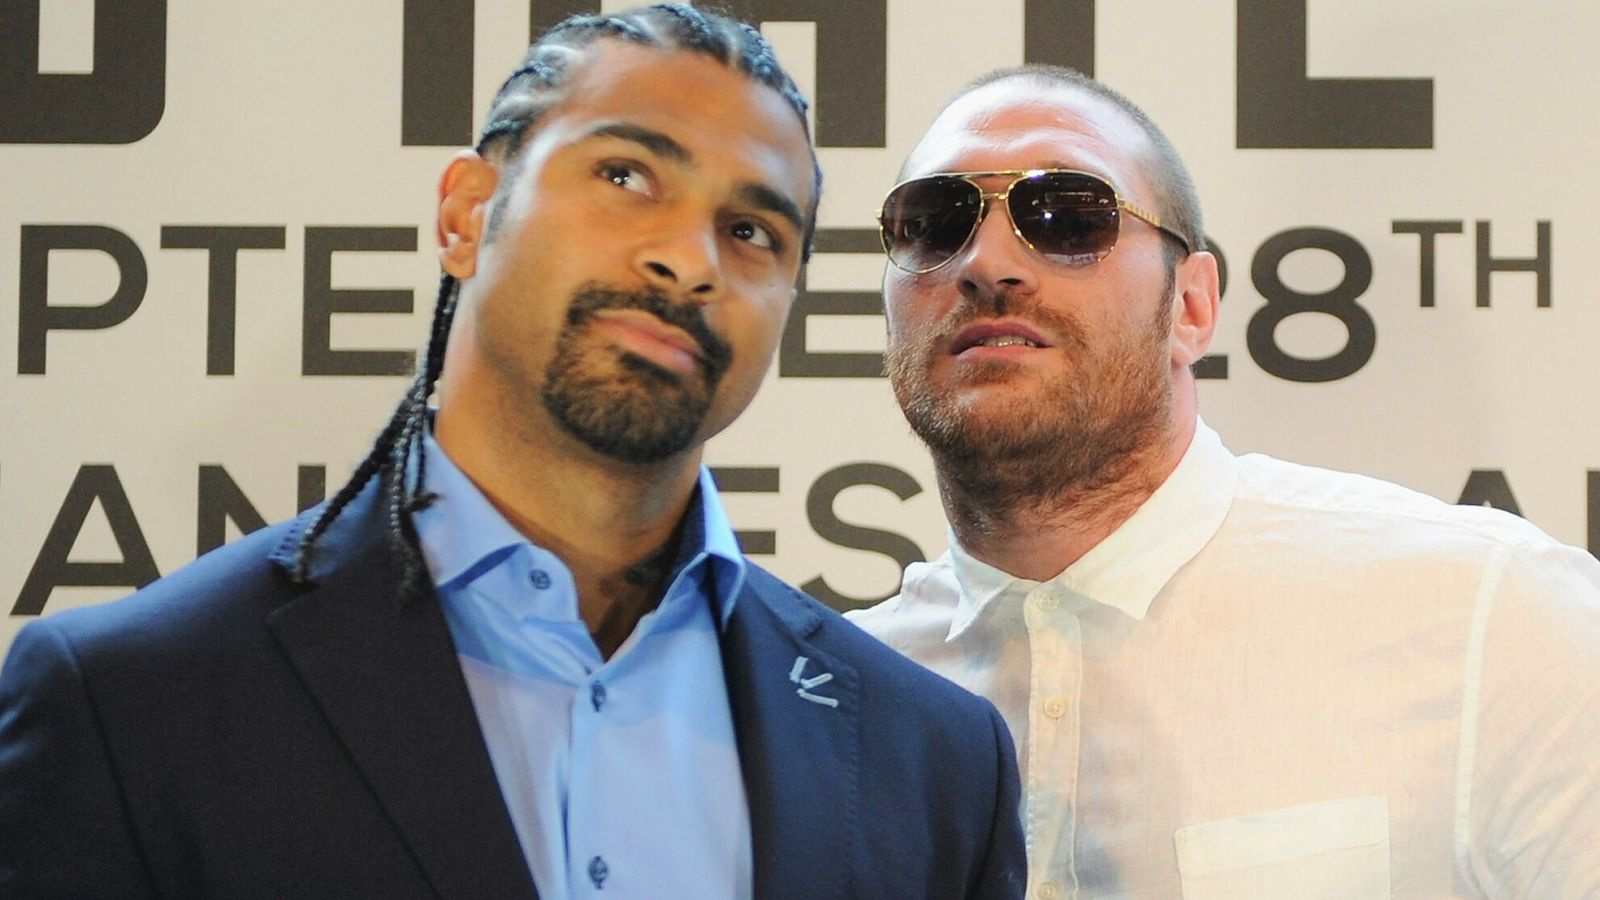 David Haye says Tyson Fury would have been overwhelmed by speed and power if their fight had gone ahead in 2013